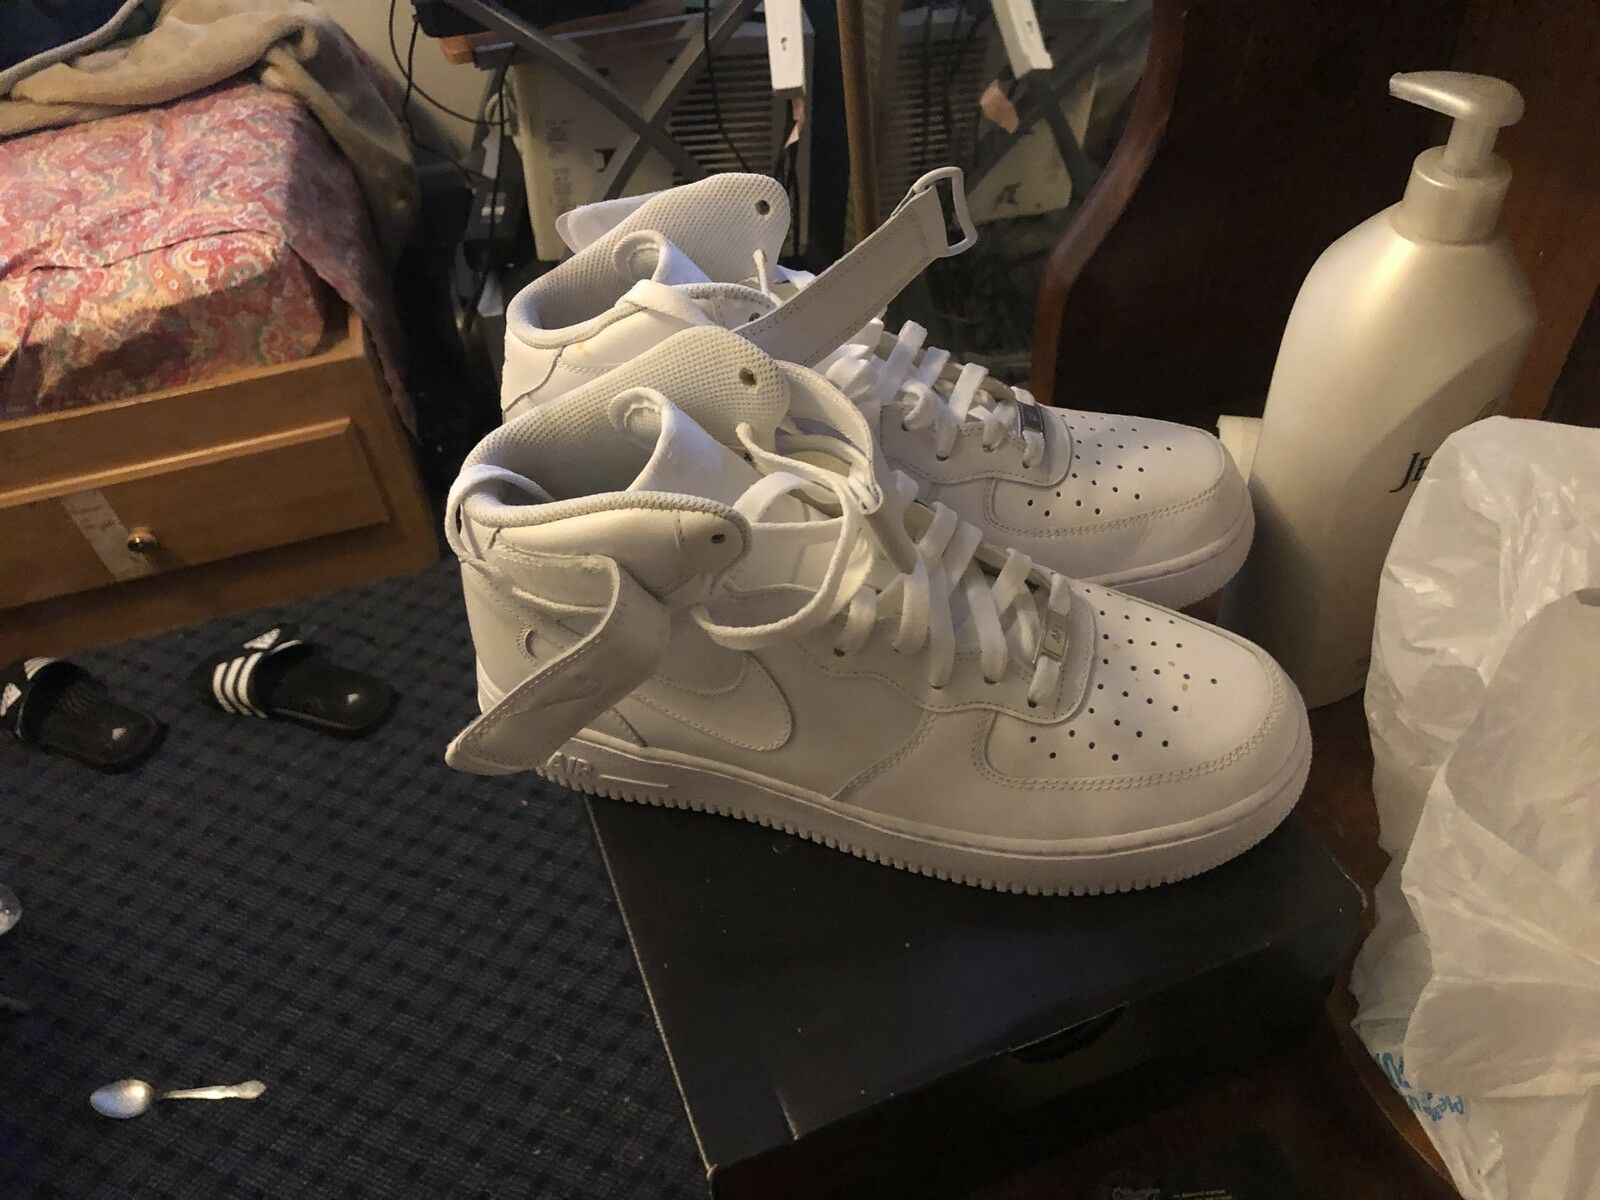 315121 115 - NIKE AIR FORCE 1 HIGH size 10 (WHITE)